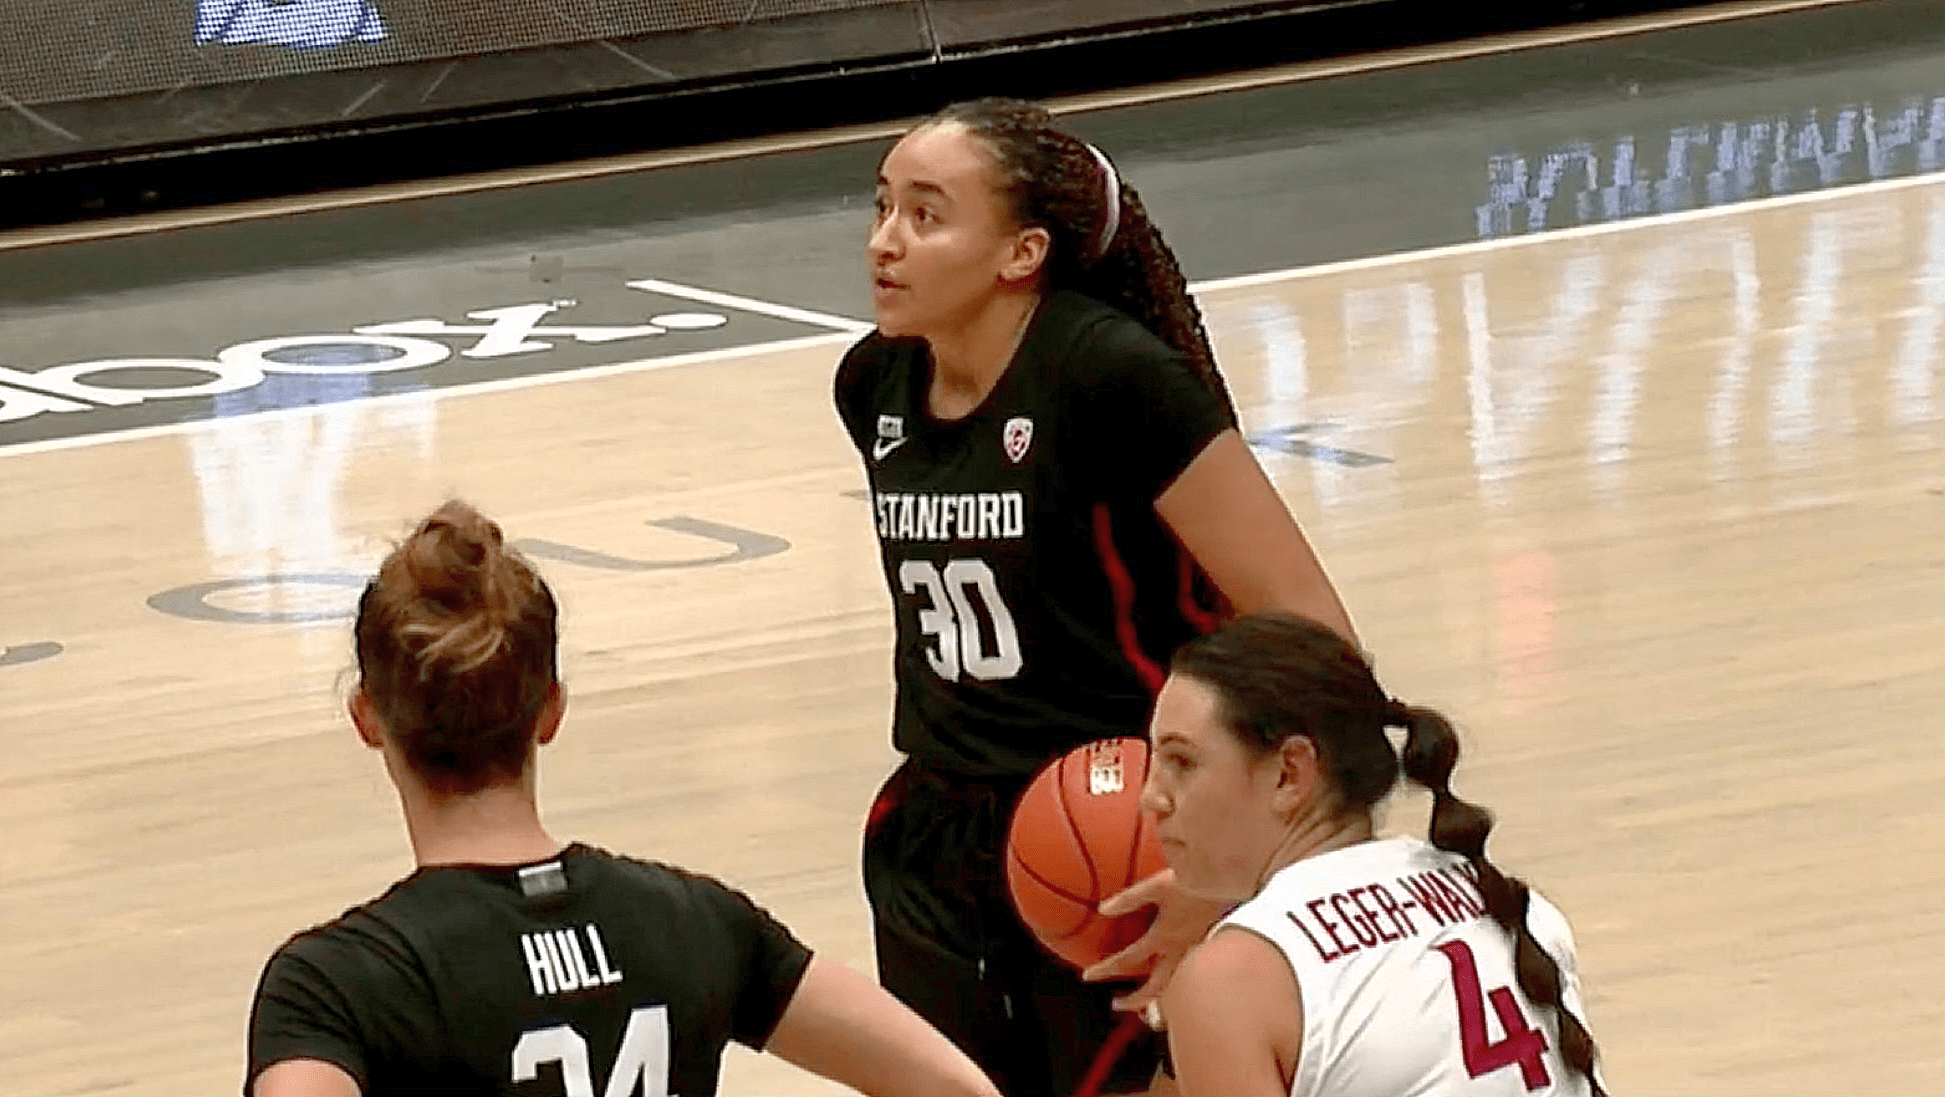 Stanford dominates Washington State in sweep, capping season series with a 77-49 win